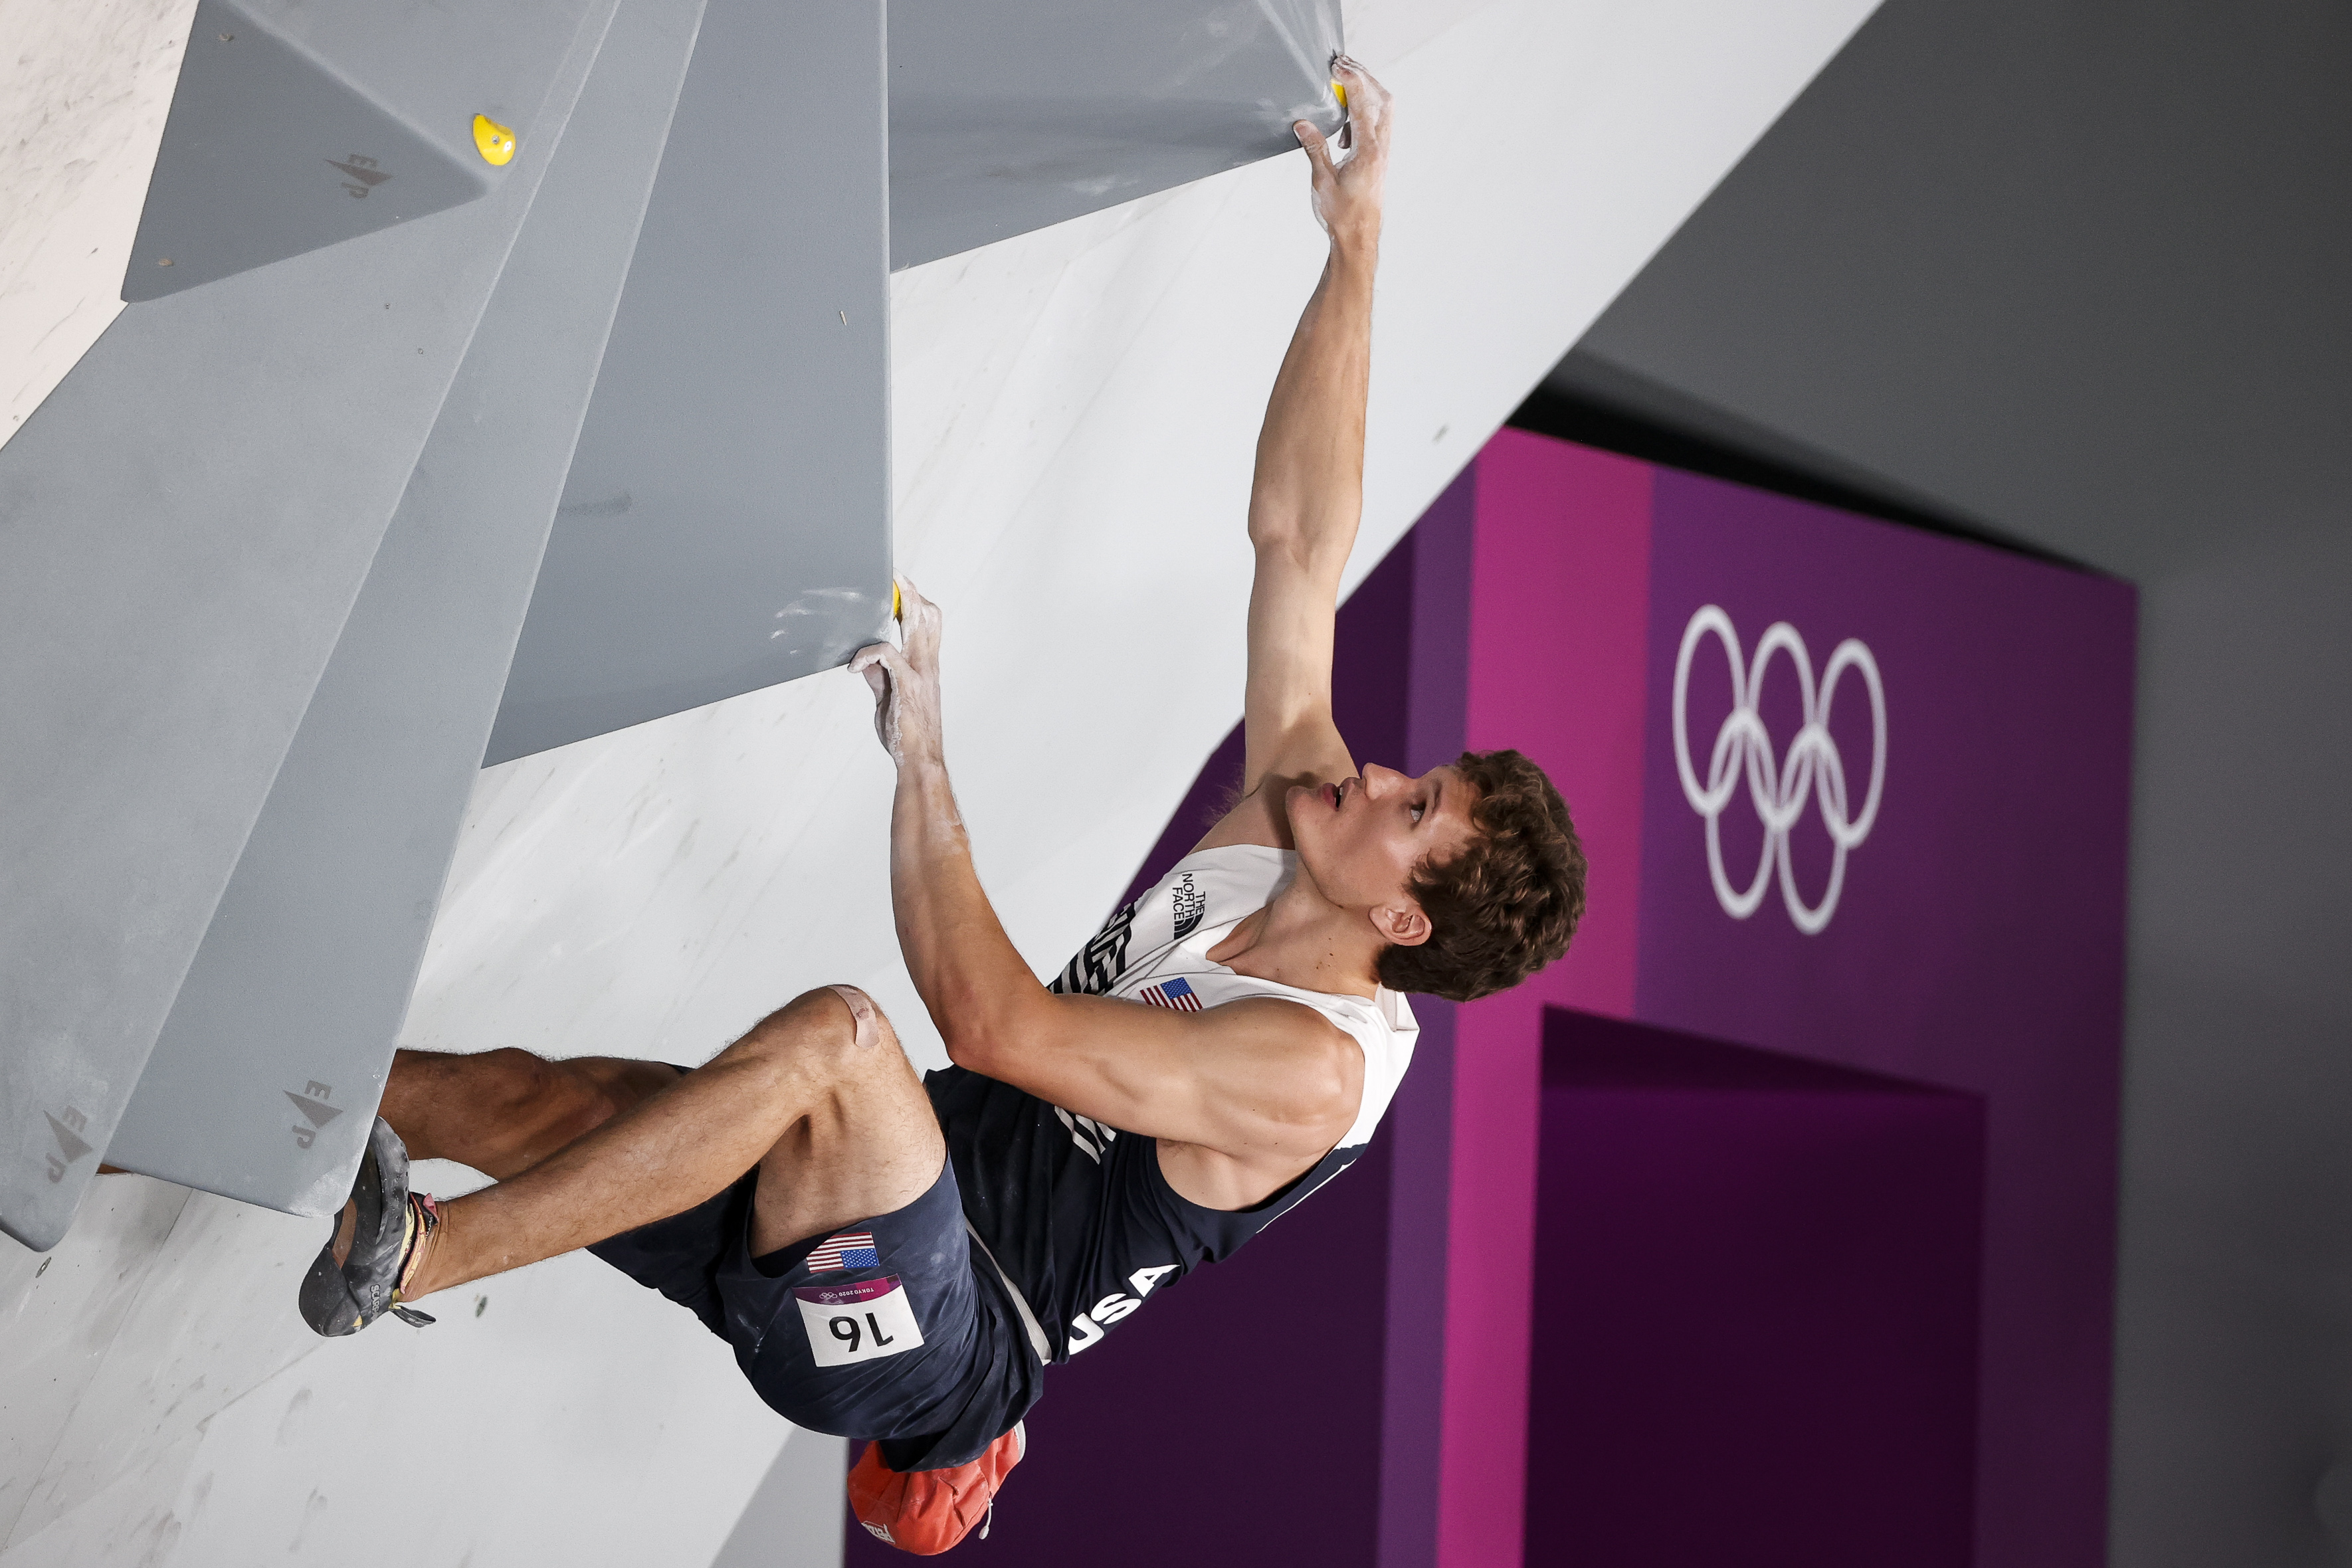 210805 IFSC News First Ever Sport Climbing Olympic Gold for Gins Lpez 3